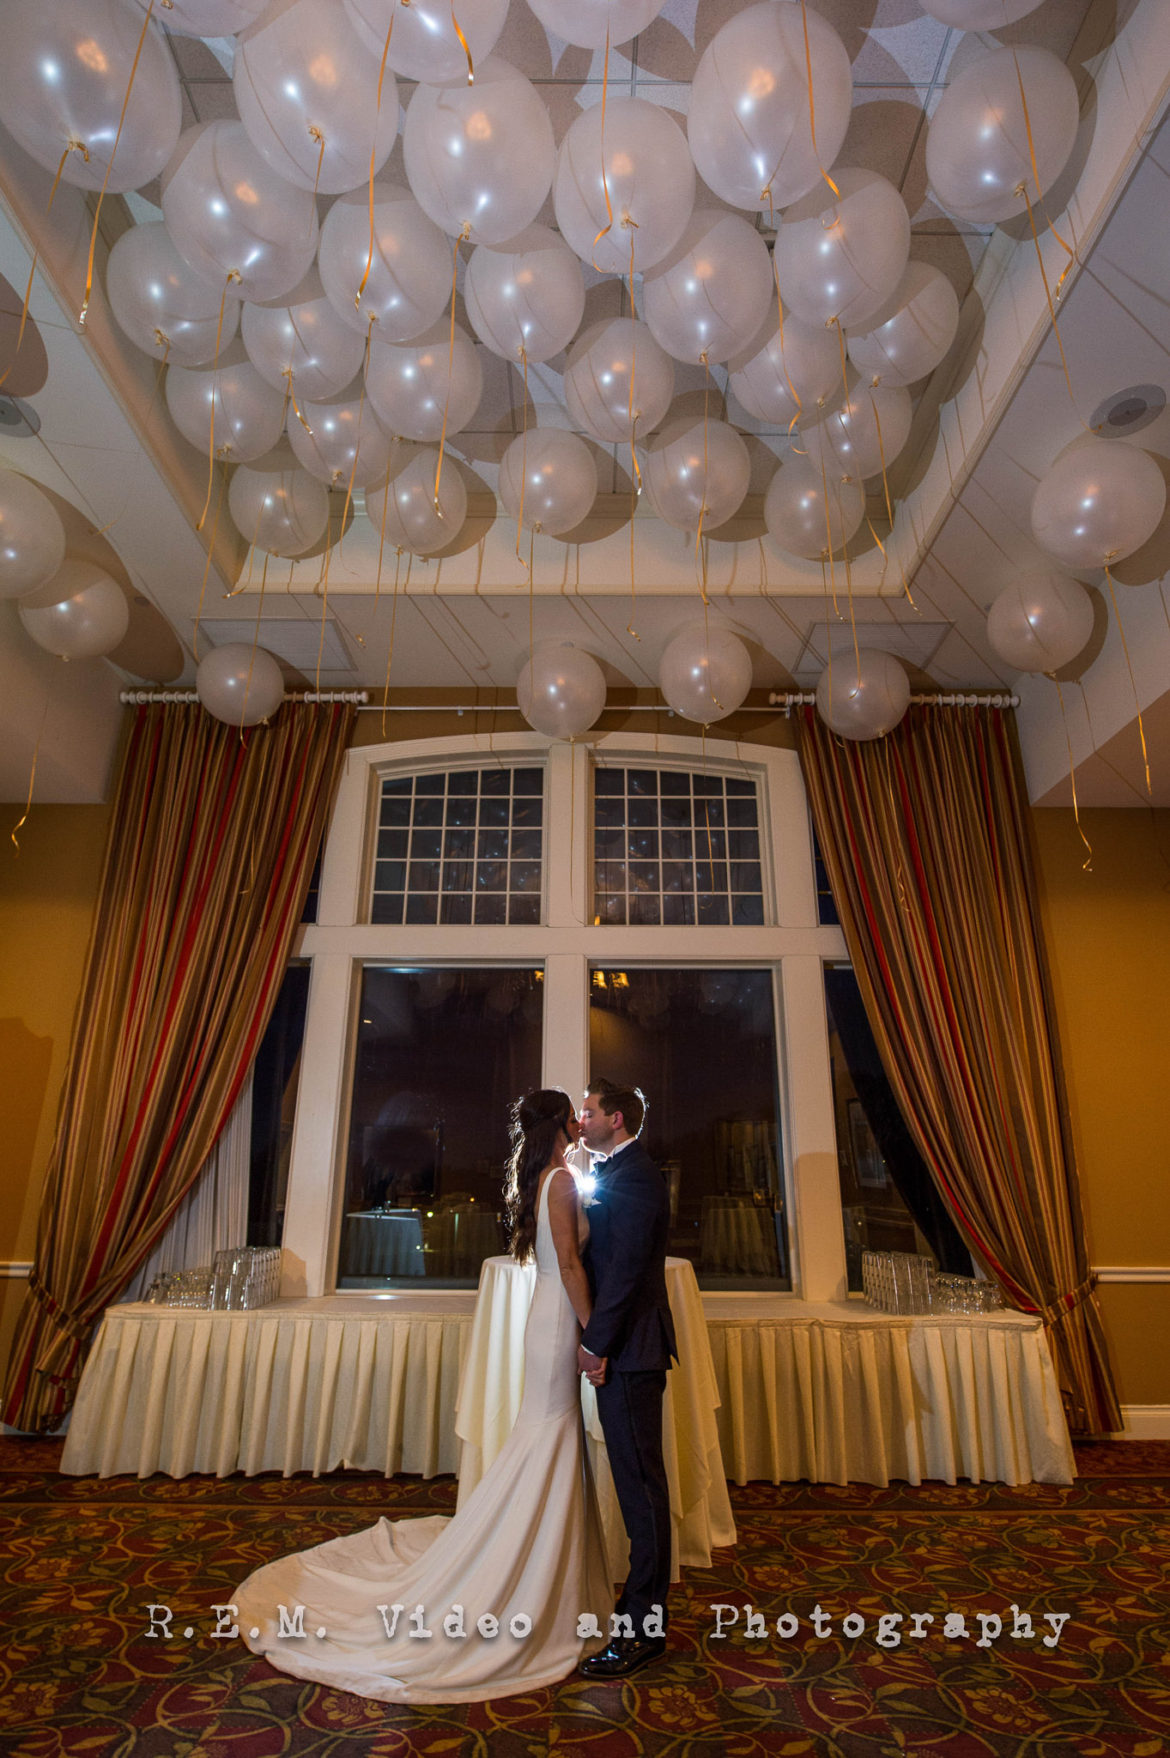 Elegant_Event_Lighting_Chicago_Arrowhead_Golf_Club_Wheaton_Wedding_Balloons_Ceiling_new_Years_Eve_WEdding